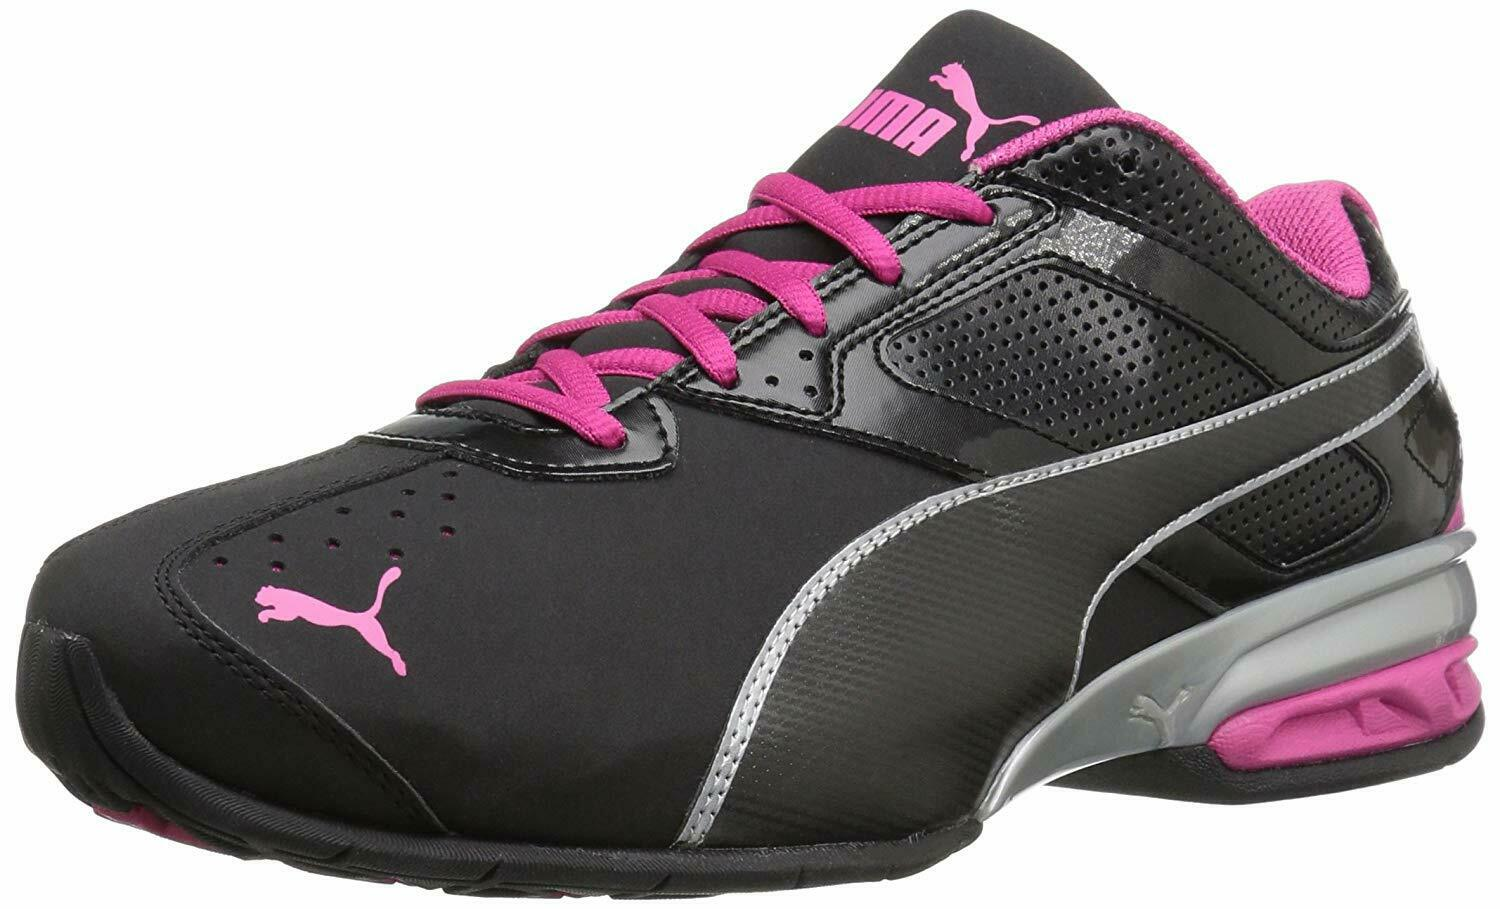 This is one of the Best Gym Shoes For Women